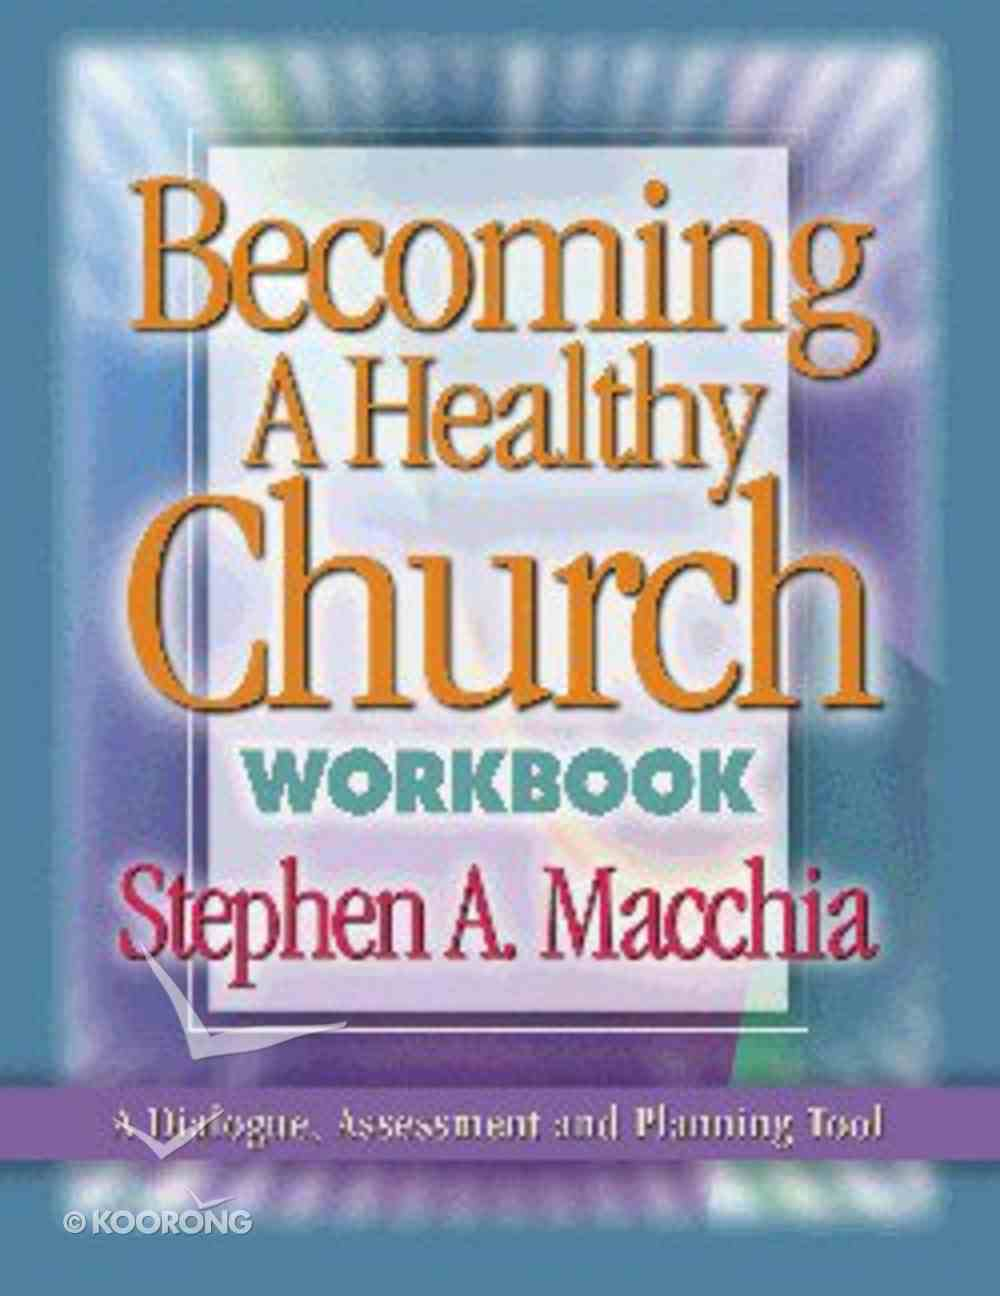 Becoming a Healthy Church (Workbook) Paperback